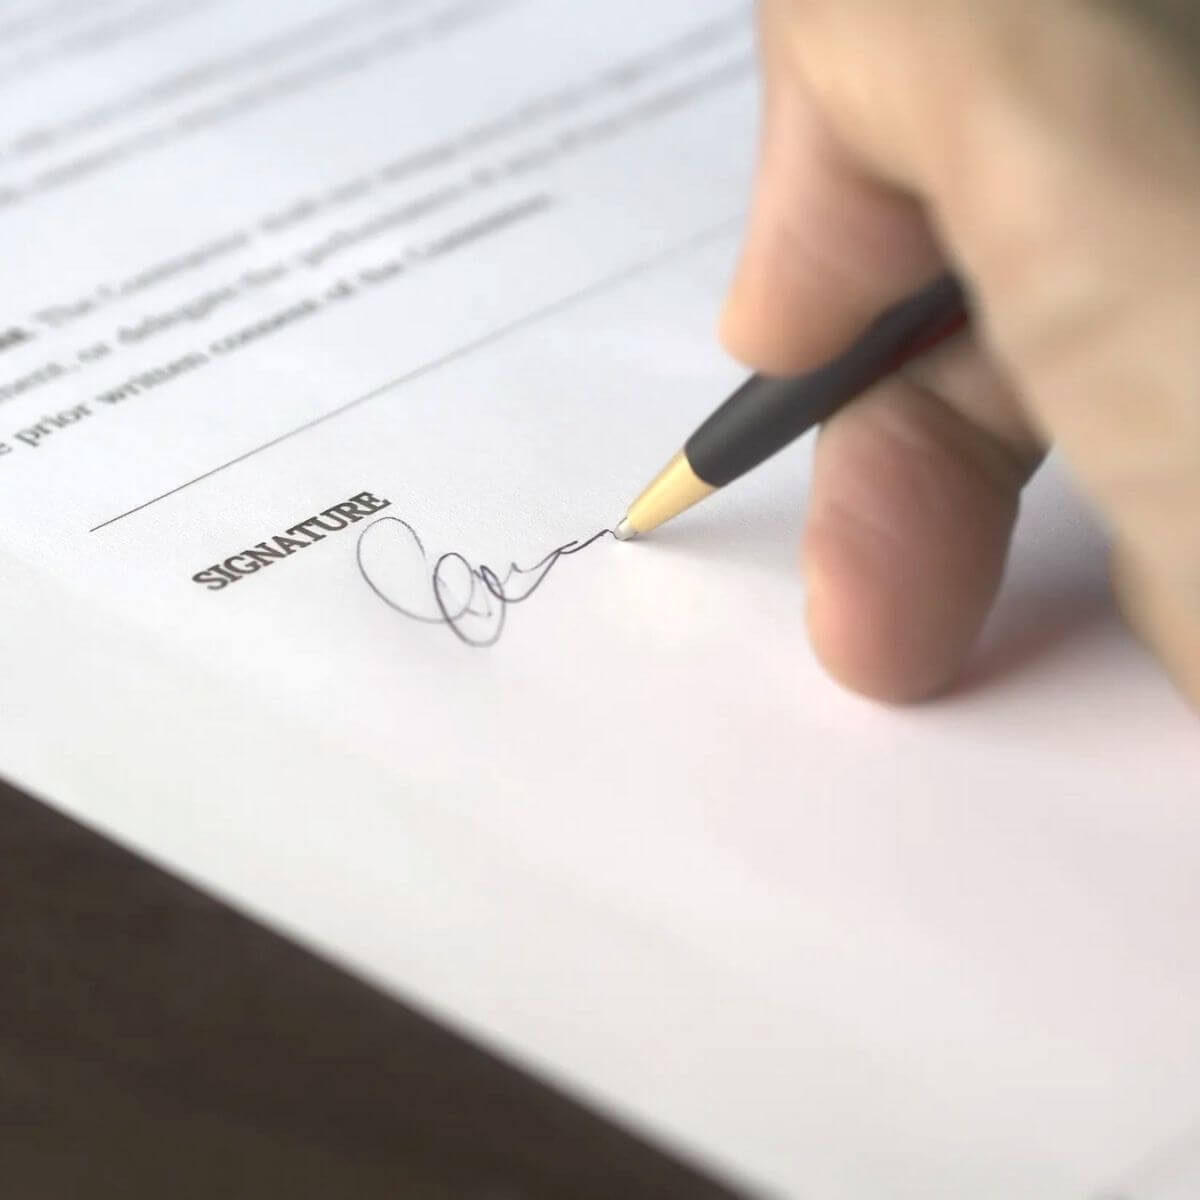 Close-up of a person signing a document.